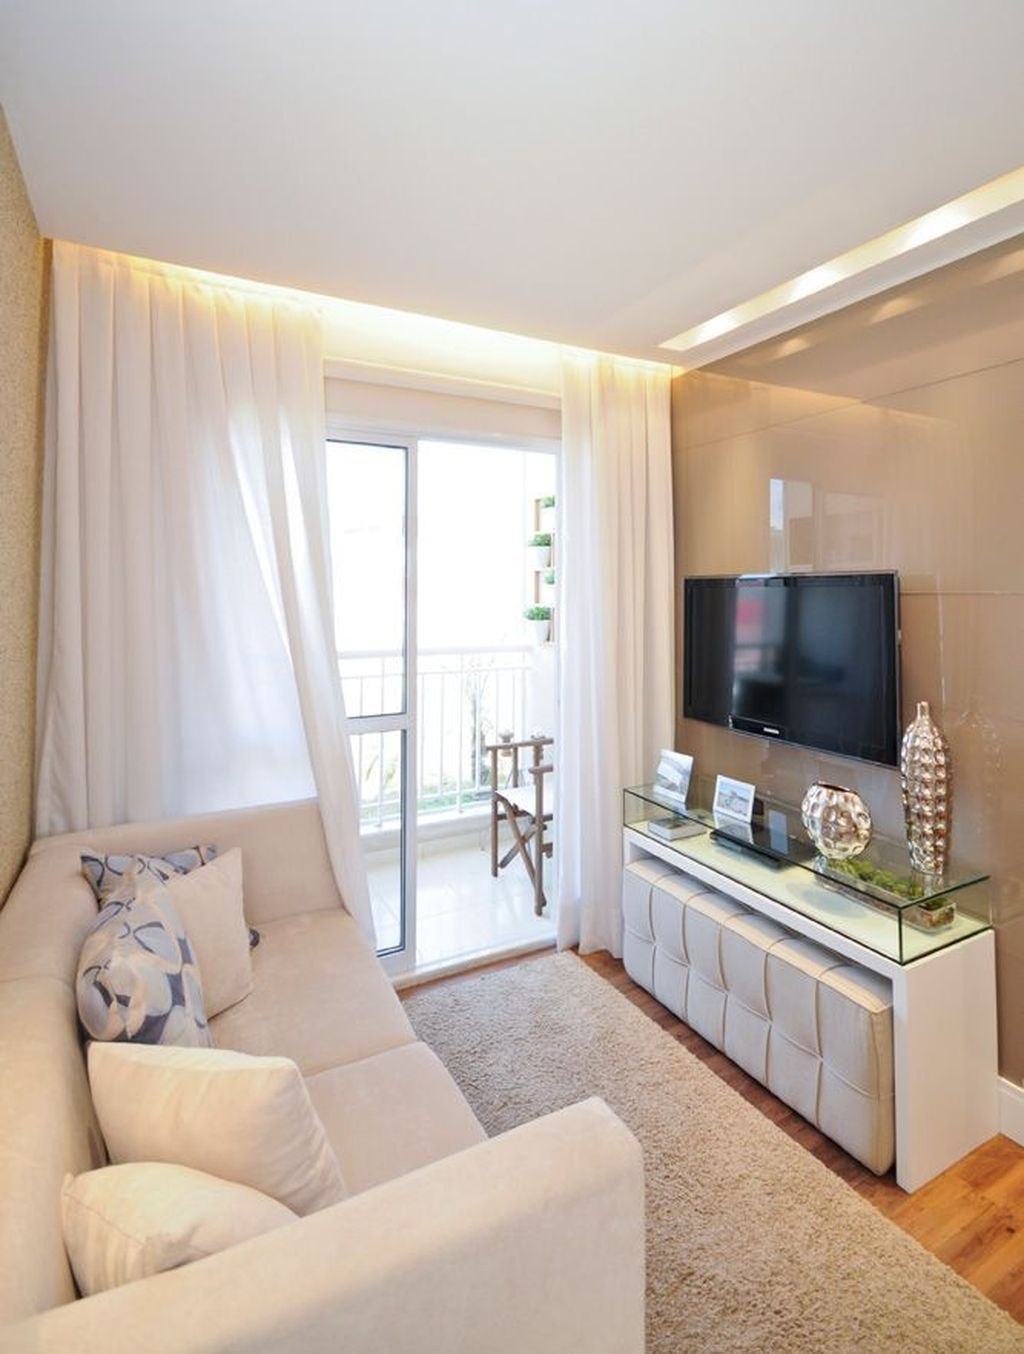 Perfect Apartment Living Room Decor Ideas On A Budget26